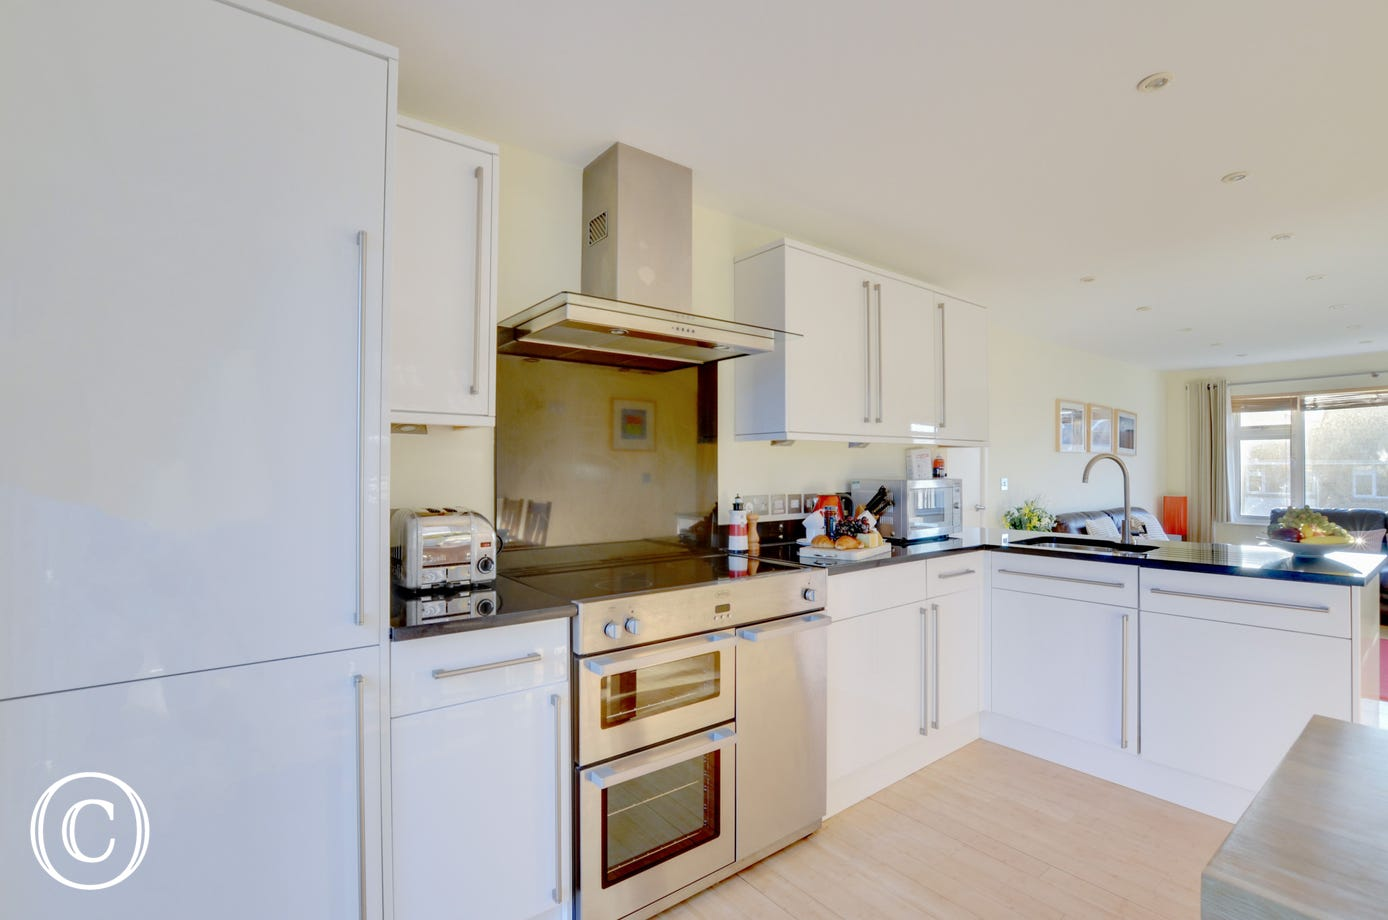 White gloss units and granite worktops in the kitchen